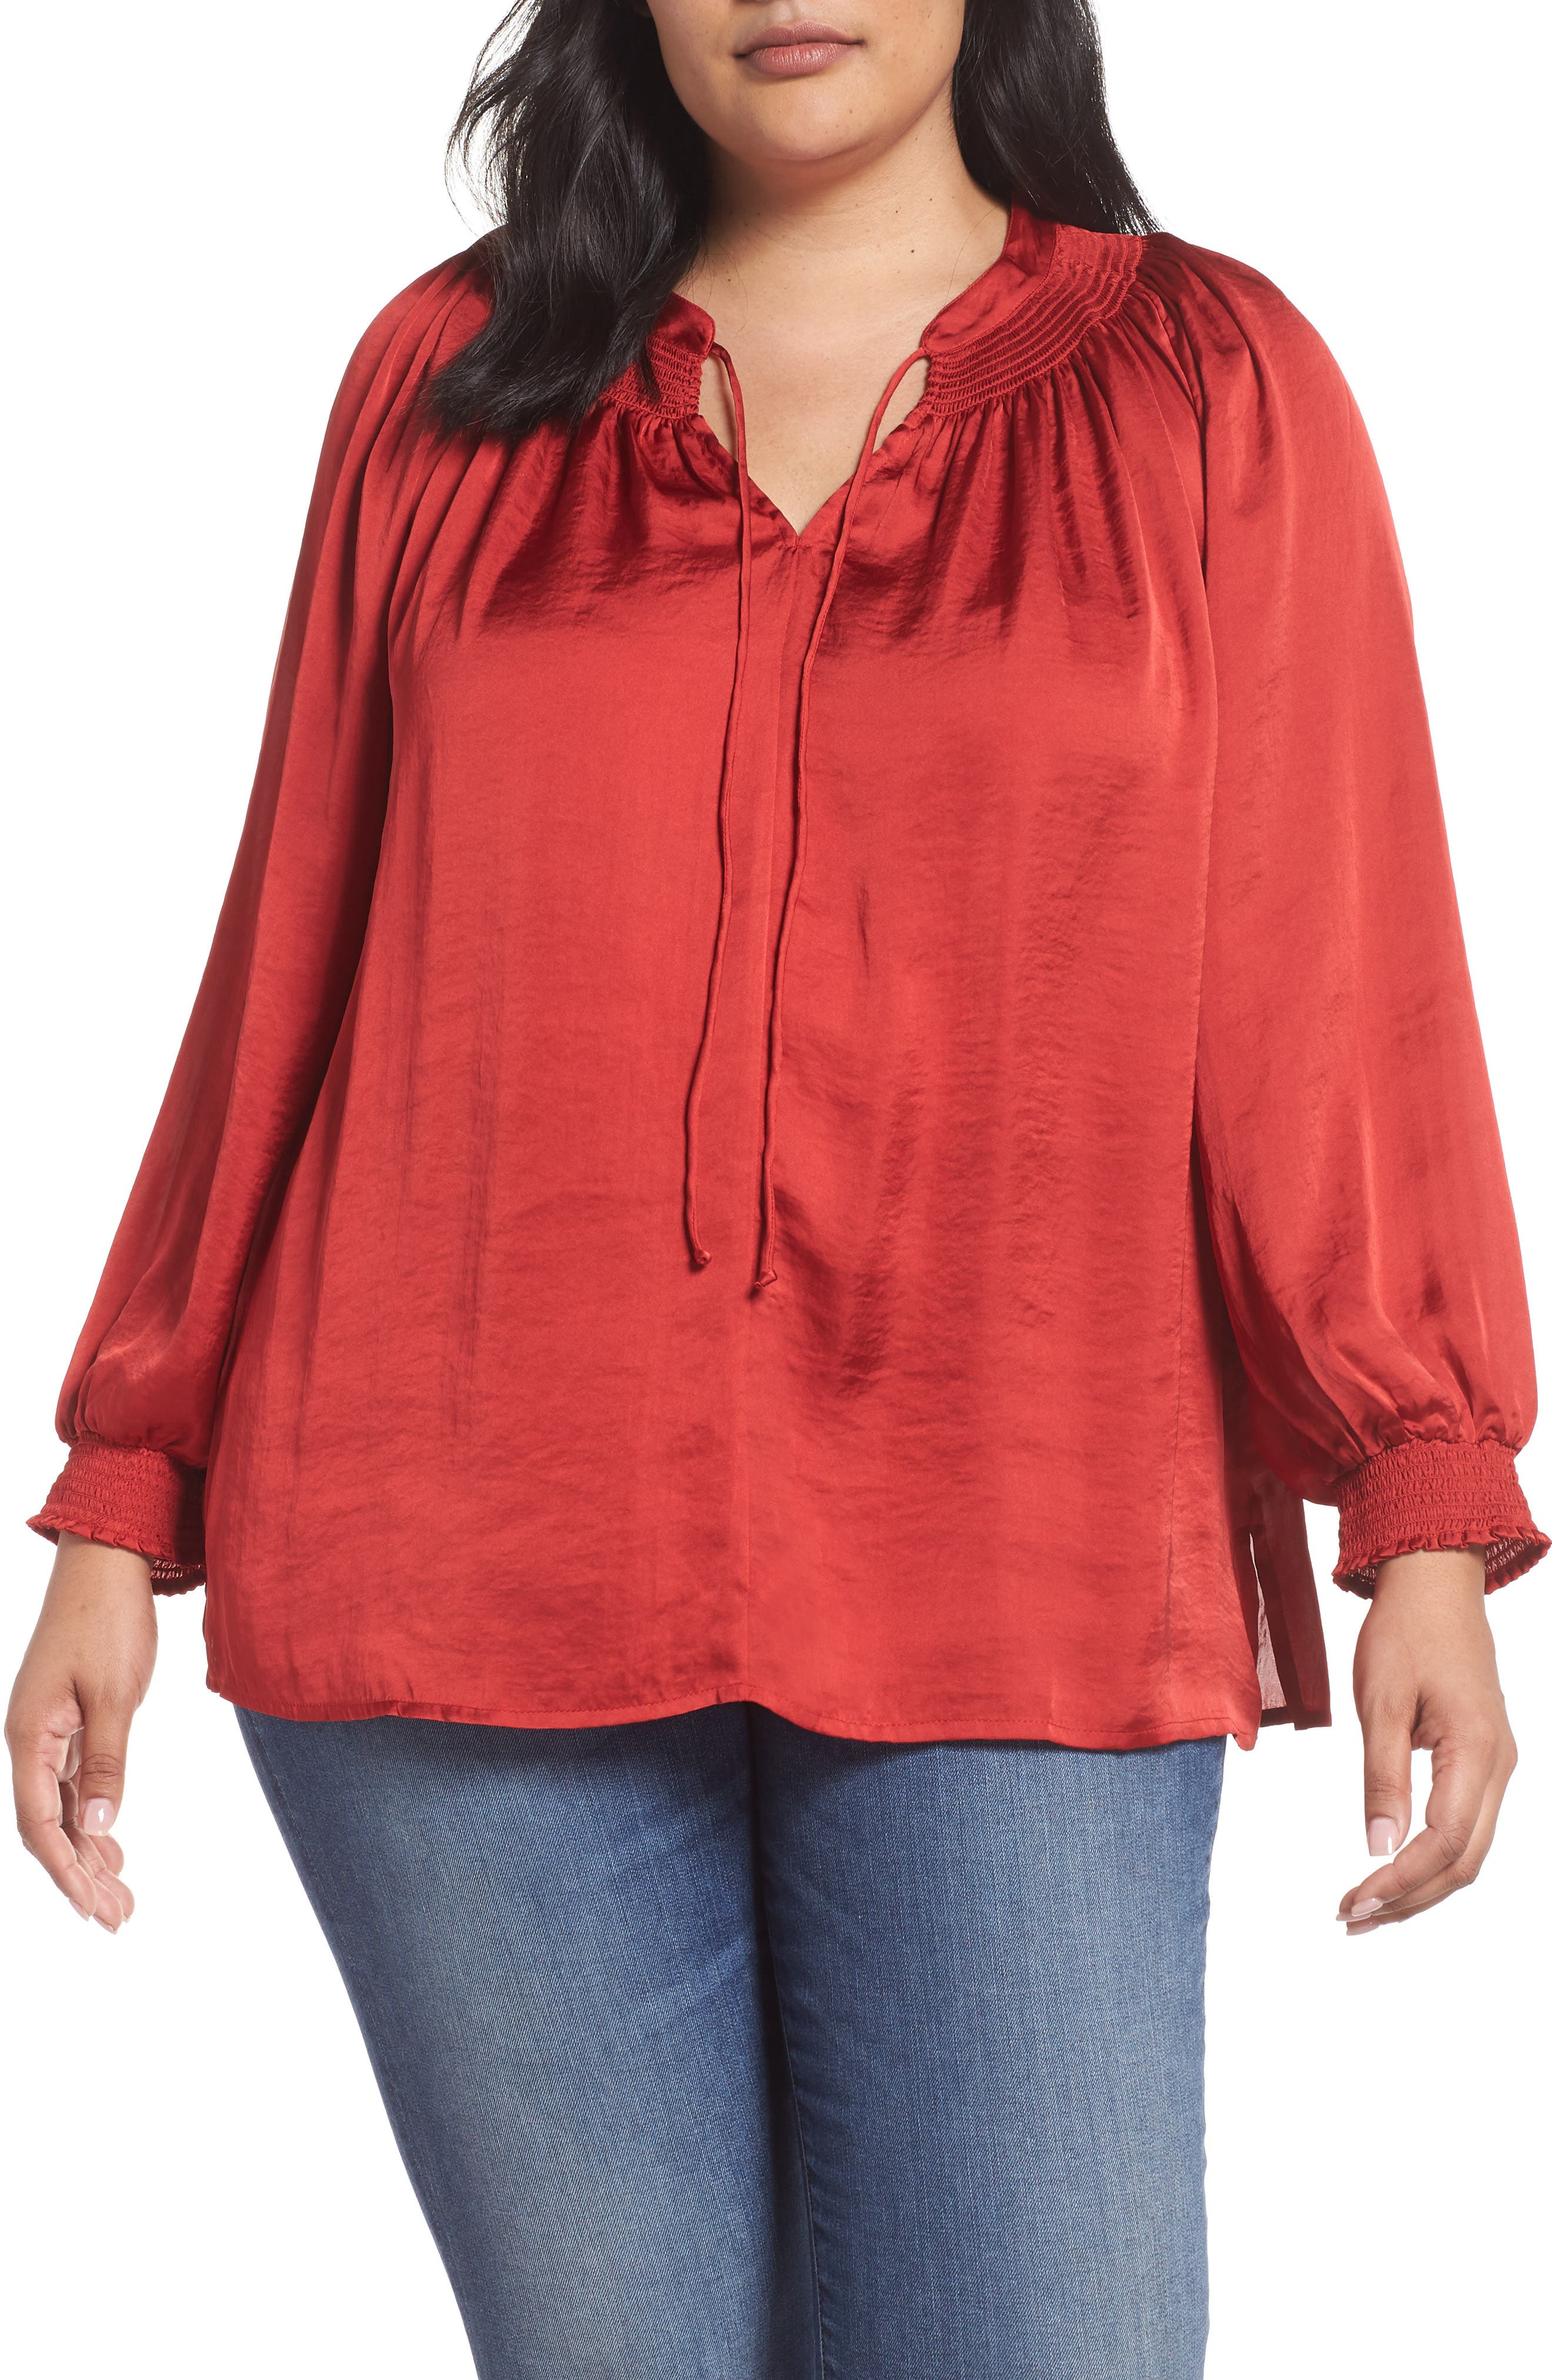 Satin Peasant Top,                             Main thumbnail 1, color,                             640